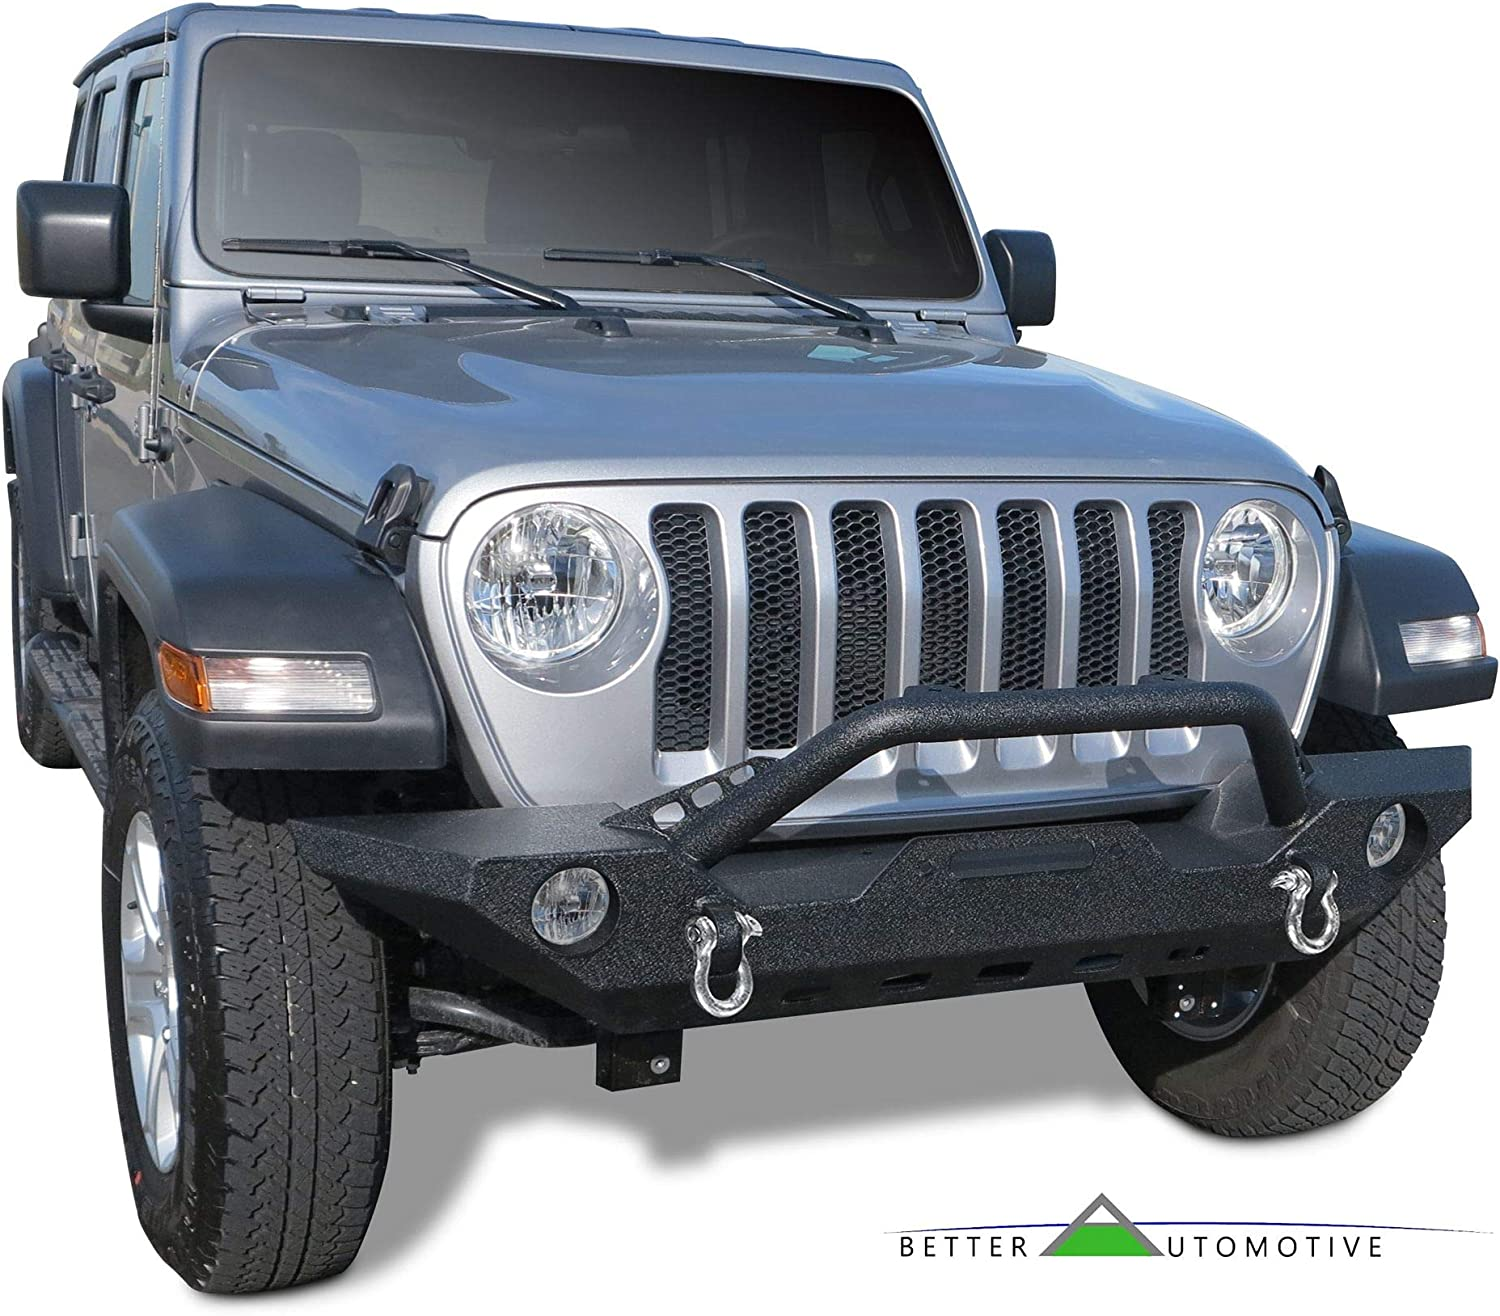 BETTER AUTOMOTIVE Front Bumper Fit 2007-2020 Jeep Wrangler JK//2018-2020 Jeep Wrangler JL 2020 Jeep Gladiator Textured Heavy Duty with OE Fog Light Hole D-Ring Winch Mount Plate Rock Crawler Off road